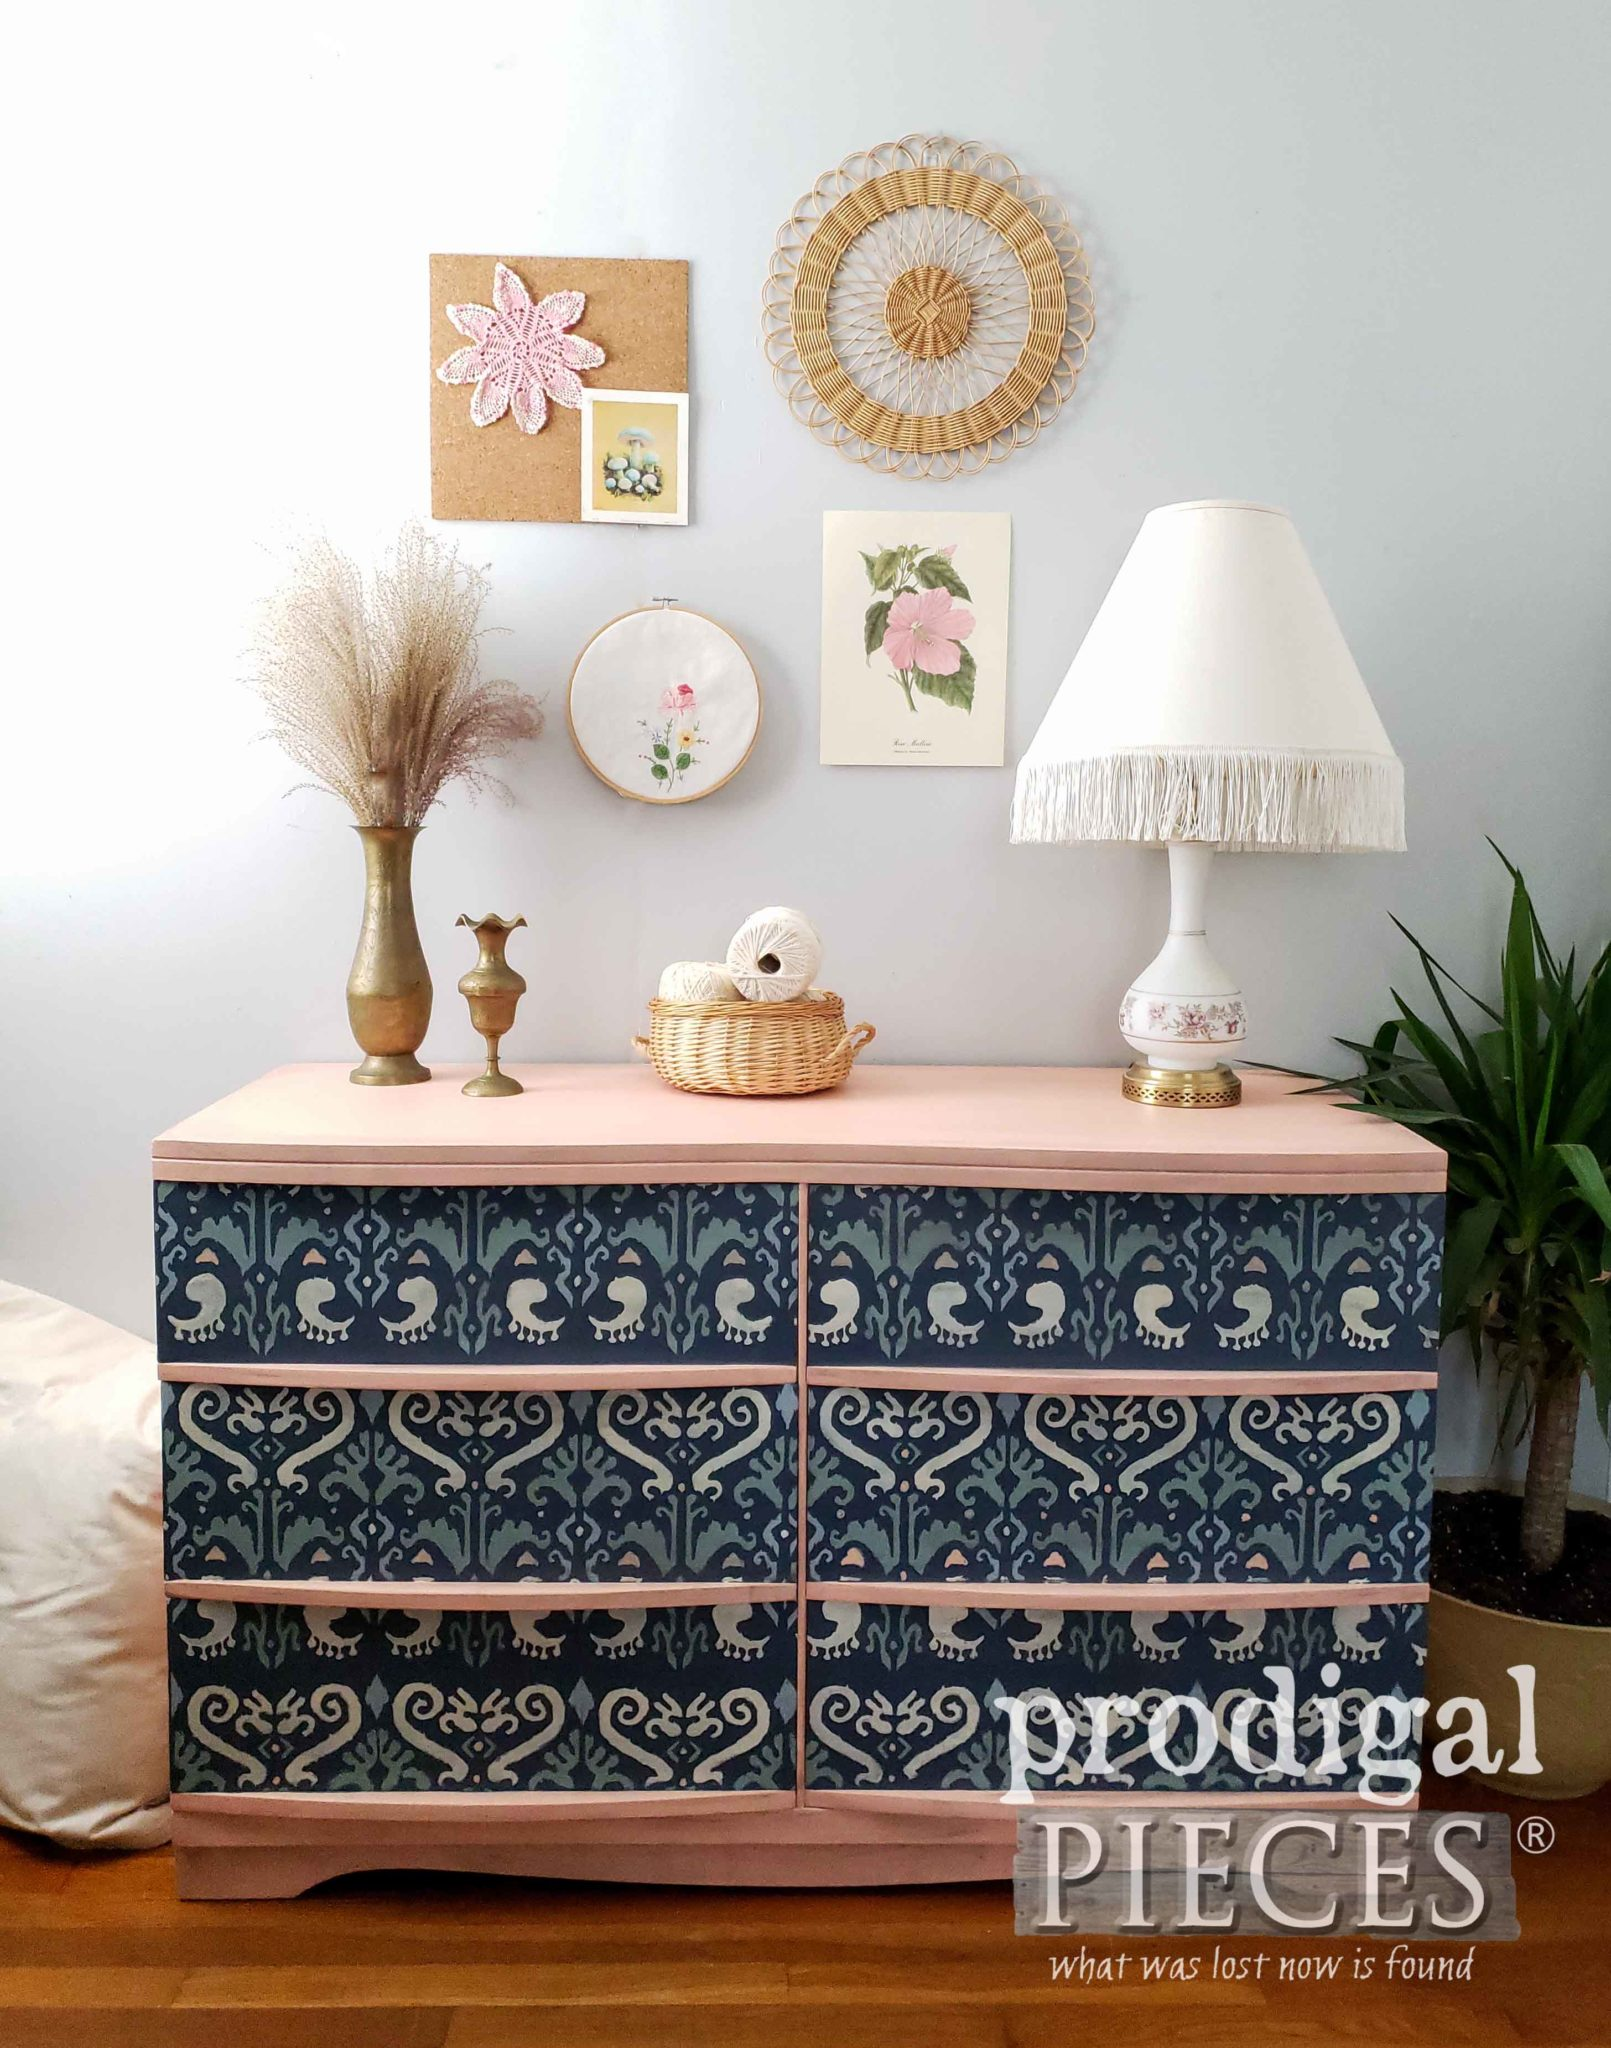 Vintage Ikat Mid Century Modern Dresser in Boho Style | Design by Larissa of Prodigal Pieces | prodigalpieces.com